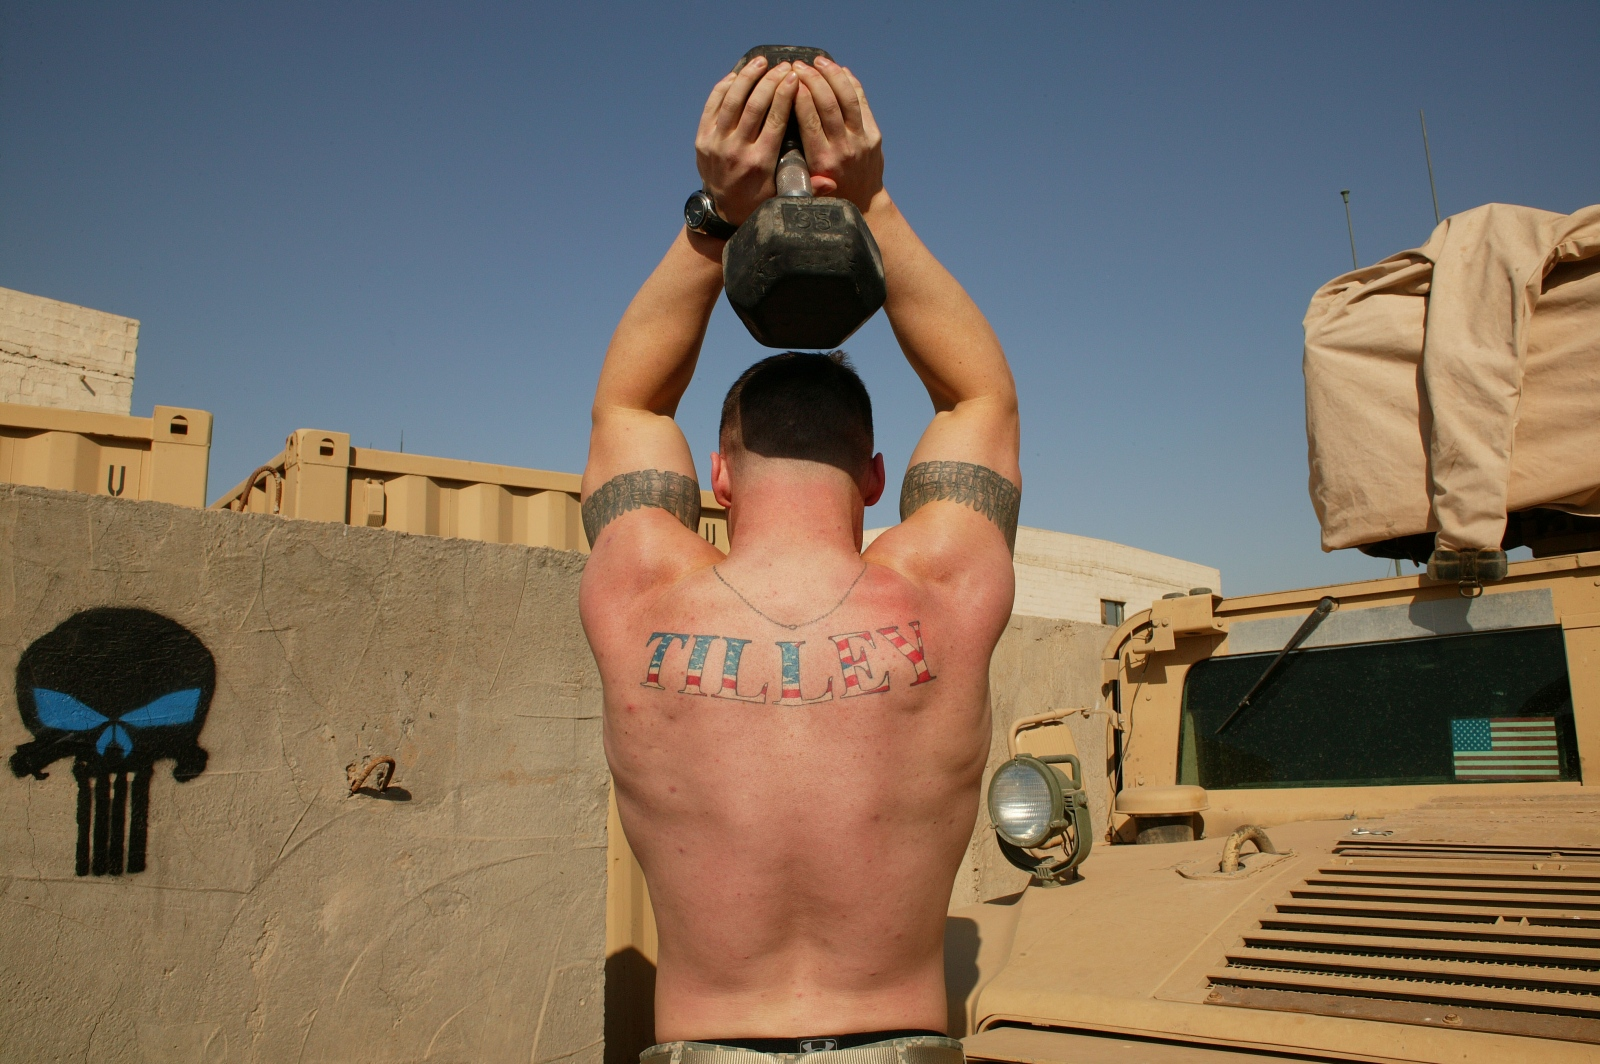 A U.S. soldier lifts weights at Forward Operating Base Falcon south of Baghdad.